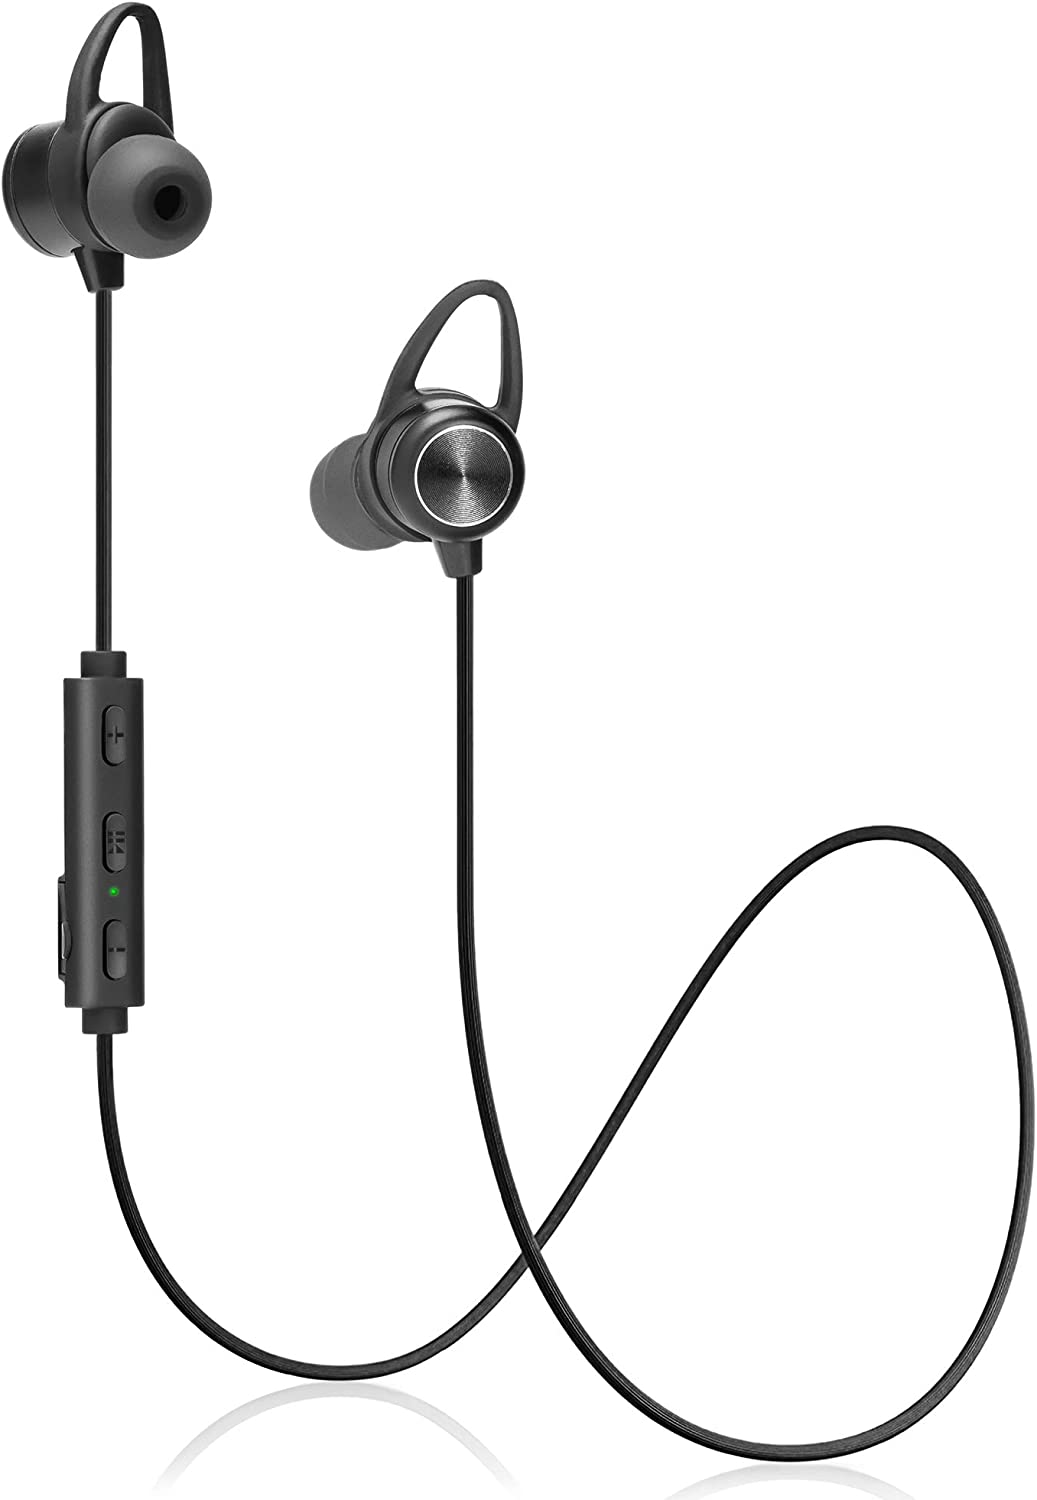 Sports Wireless Earbuds Bluetooth Headphones – 9 Hours Playtime HD IPX7 Bluetooth Earbuds – Best Headphones for Running – Stereo Sound Ear Buds Wireless Noise Cancelling Headphones with Microphone